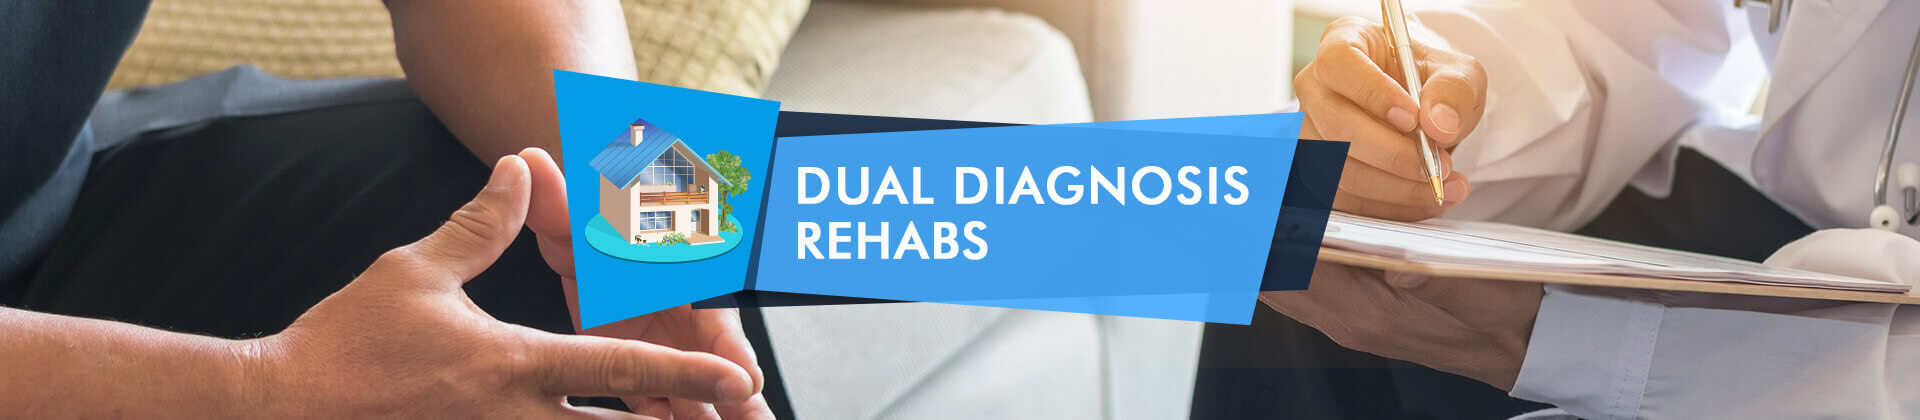 dual diagnosis rehabilitation